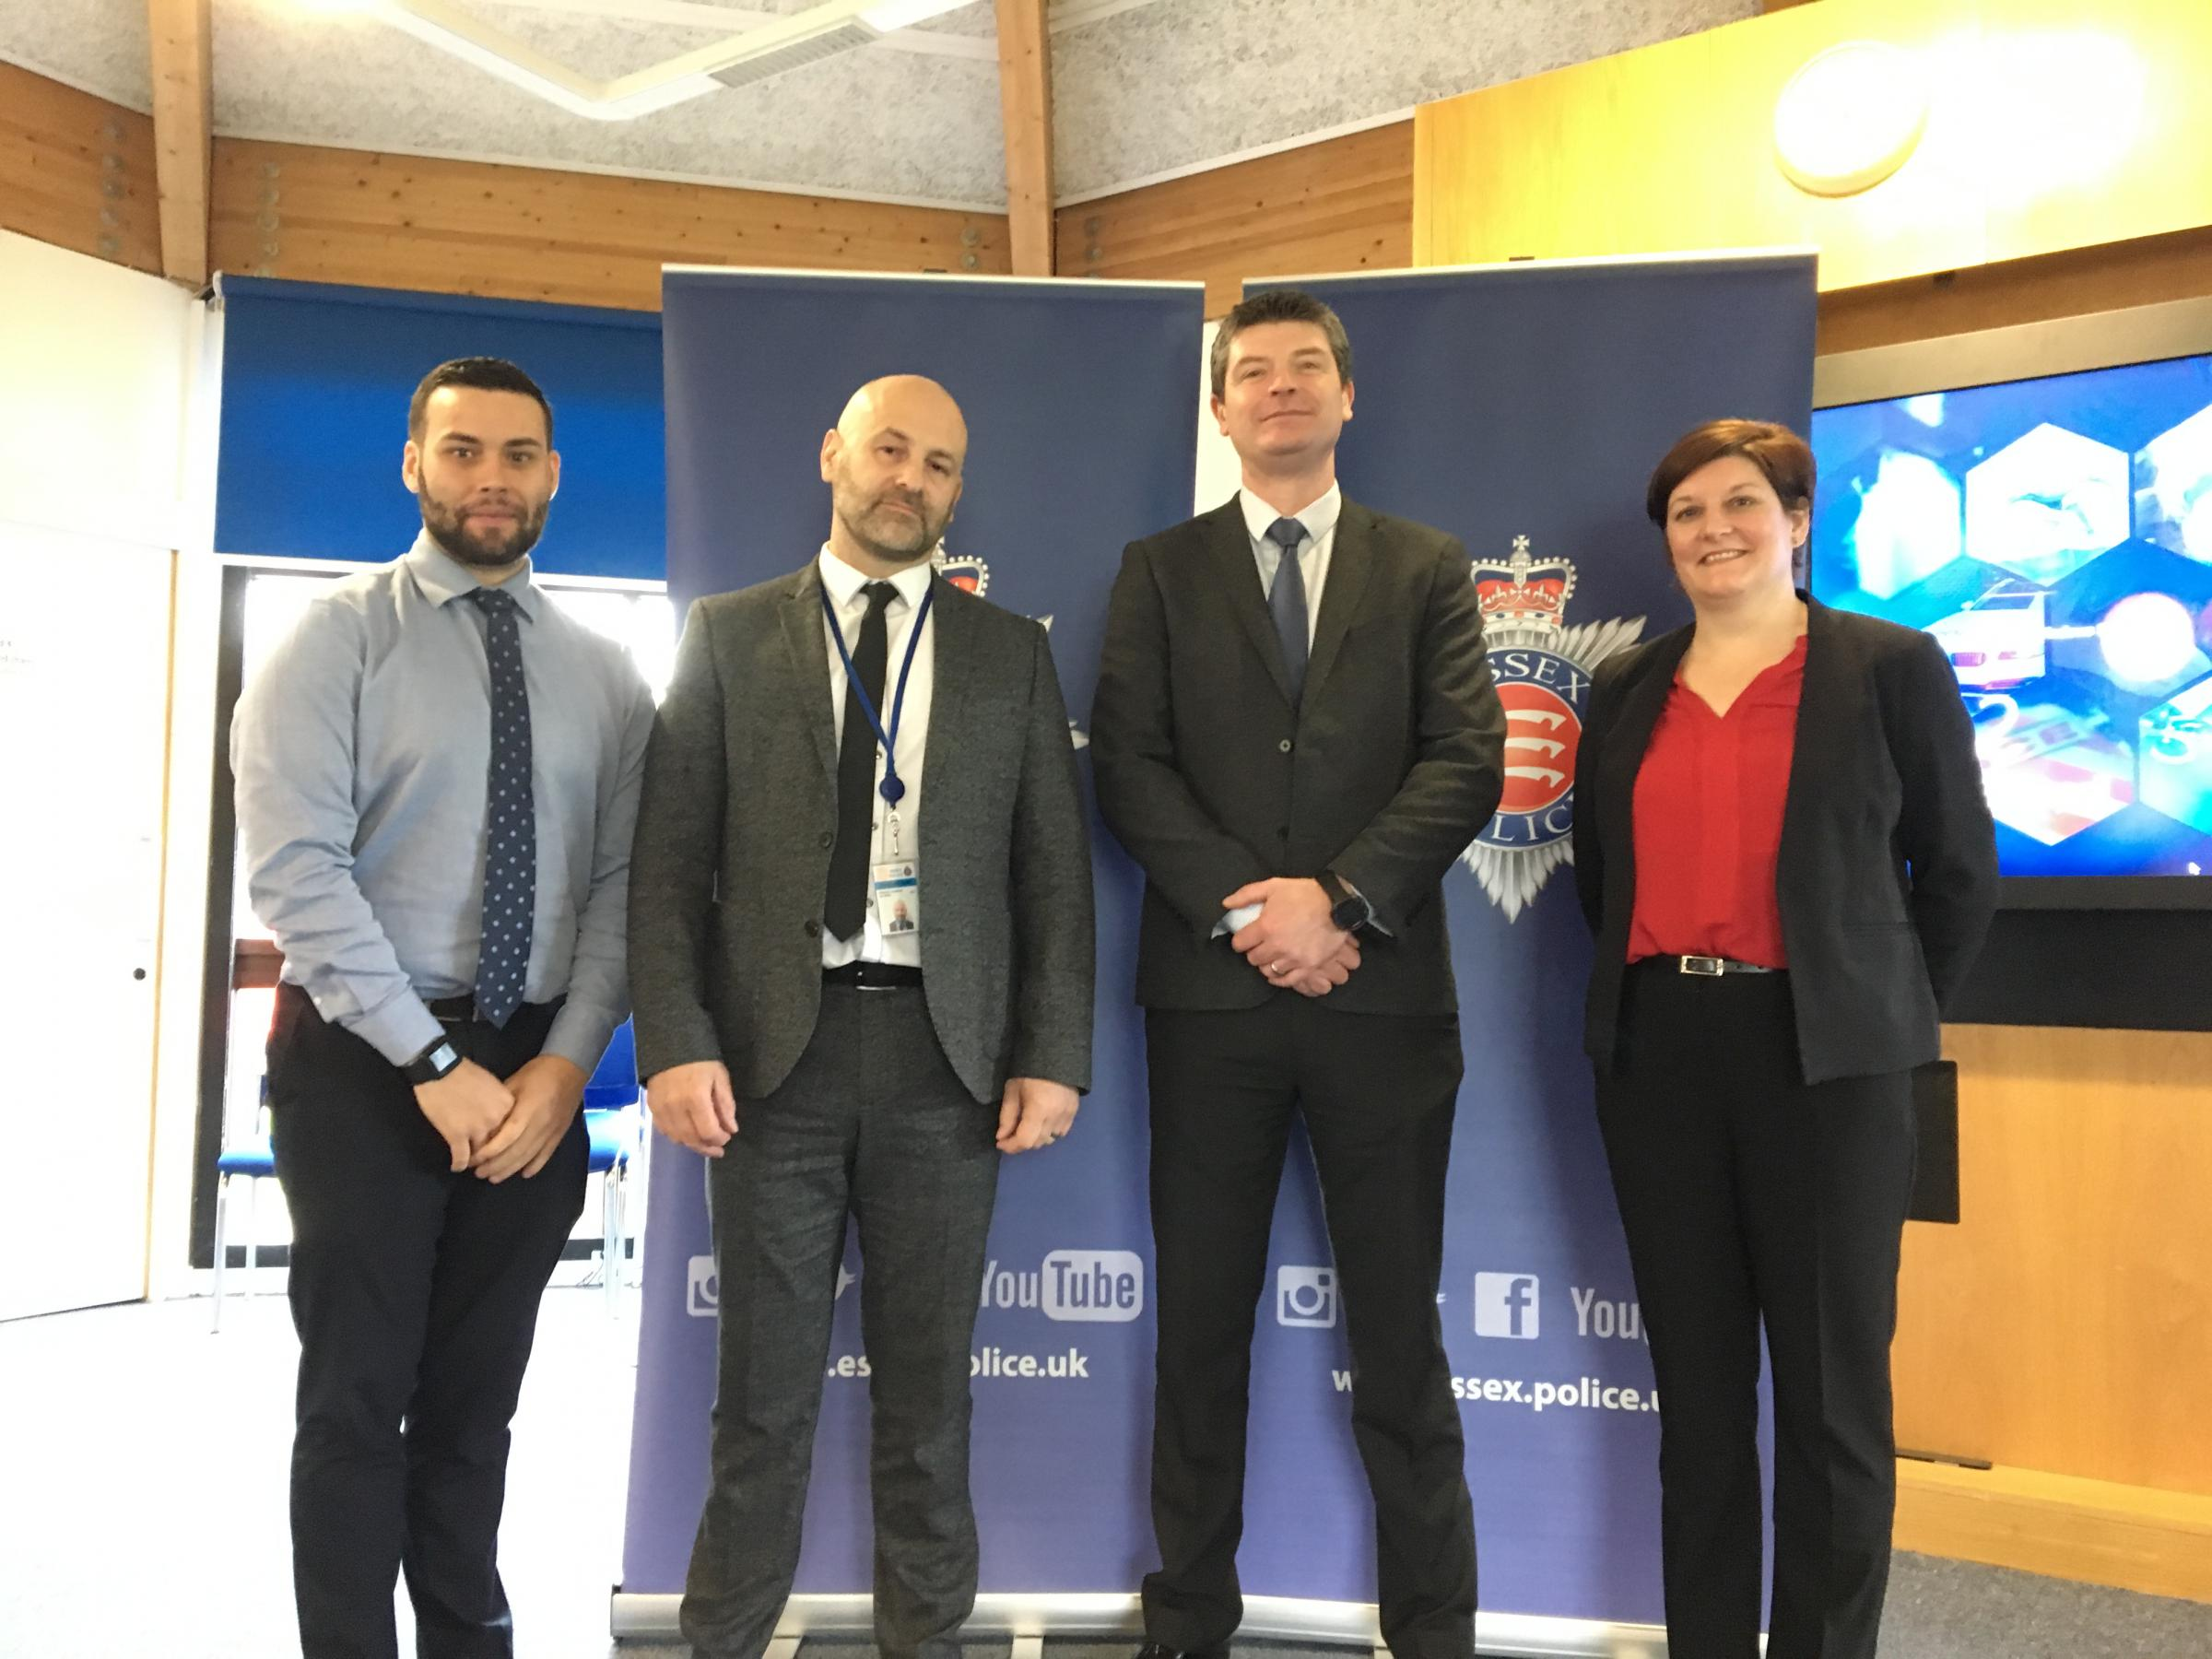 Civilian detective scheme launched by Essex Police